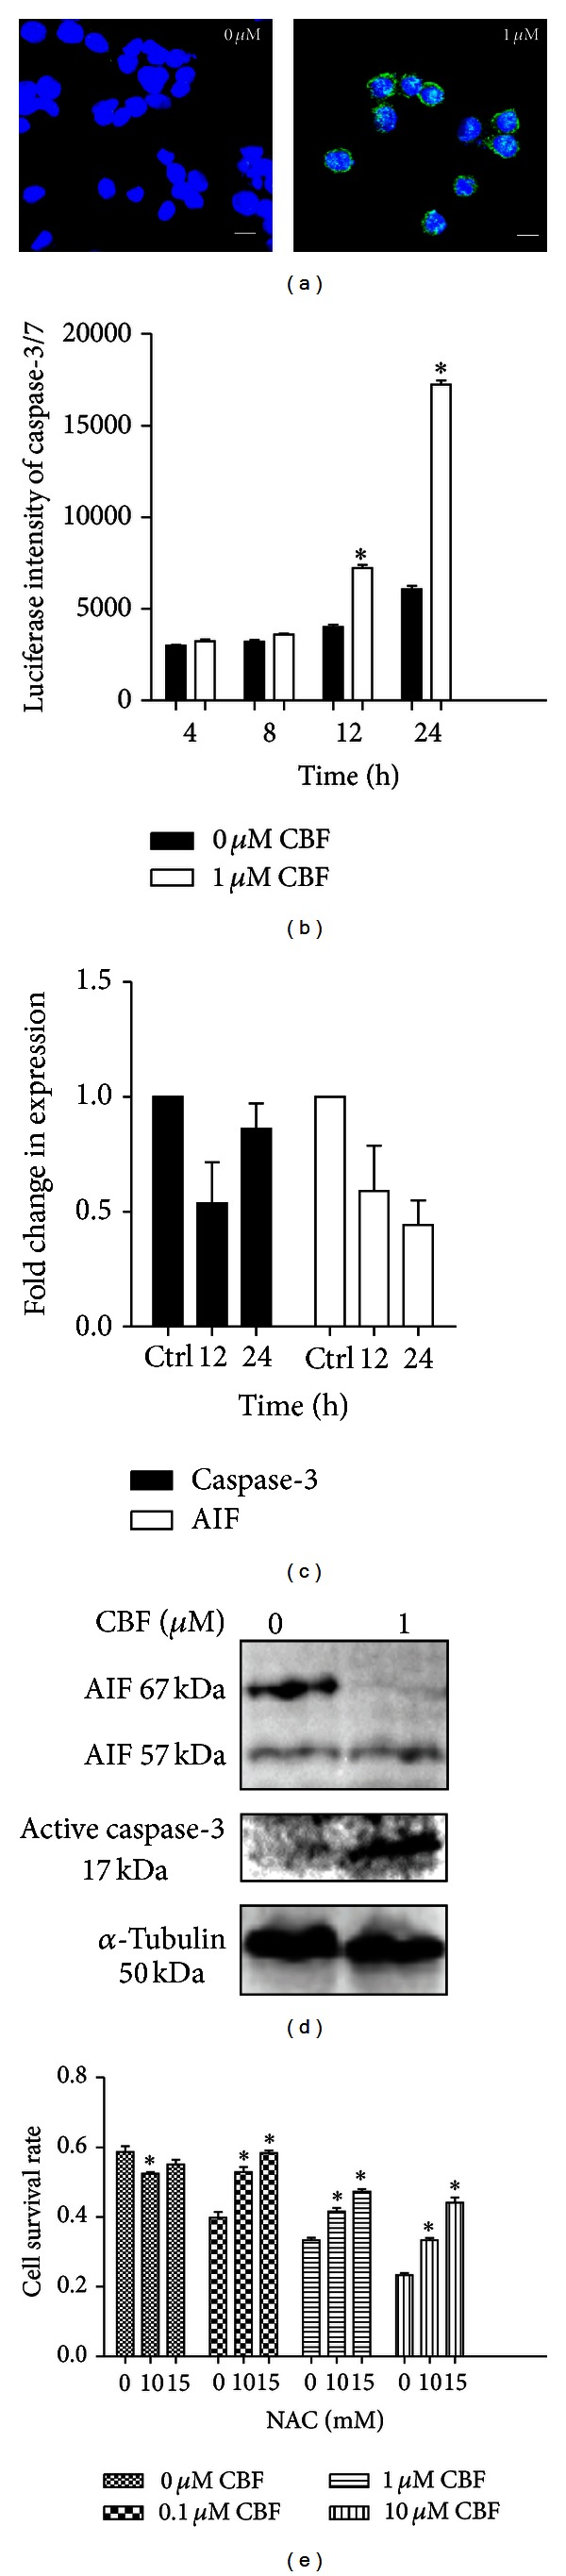 CBF-induced apoptosis is both caspase-3 dependent and independent in HCT116 cells. (a) Expression of active caspase-3 detected by confocal microscopy. HCT116 cells were treated with 0 or 1 µ M of CBF for 24 hours and analysed by immunofluorescence. The expression of active caspase-3 (green fluorescence) was only observed in treated HCT116. Cell nuclei were stained with DAPI (blue fluorescence). Scale bars equal 10 μ m. (b) Detection of caspase-3/7 activity via a time course. A significant increase of caspase-3/7 activity was found after 24-hour-CBF exposure ( N = 9, * P